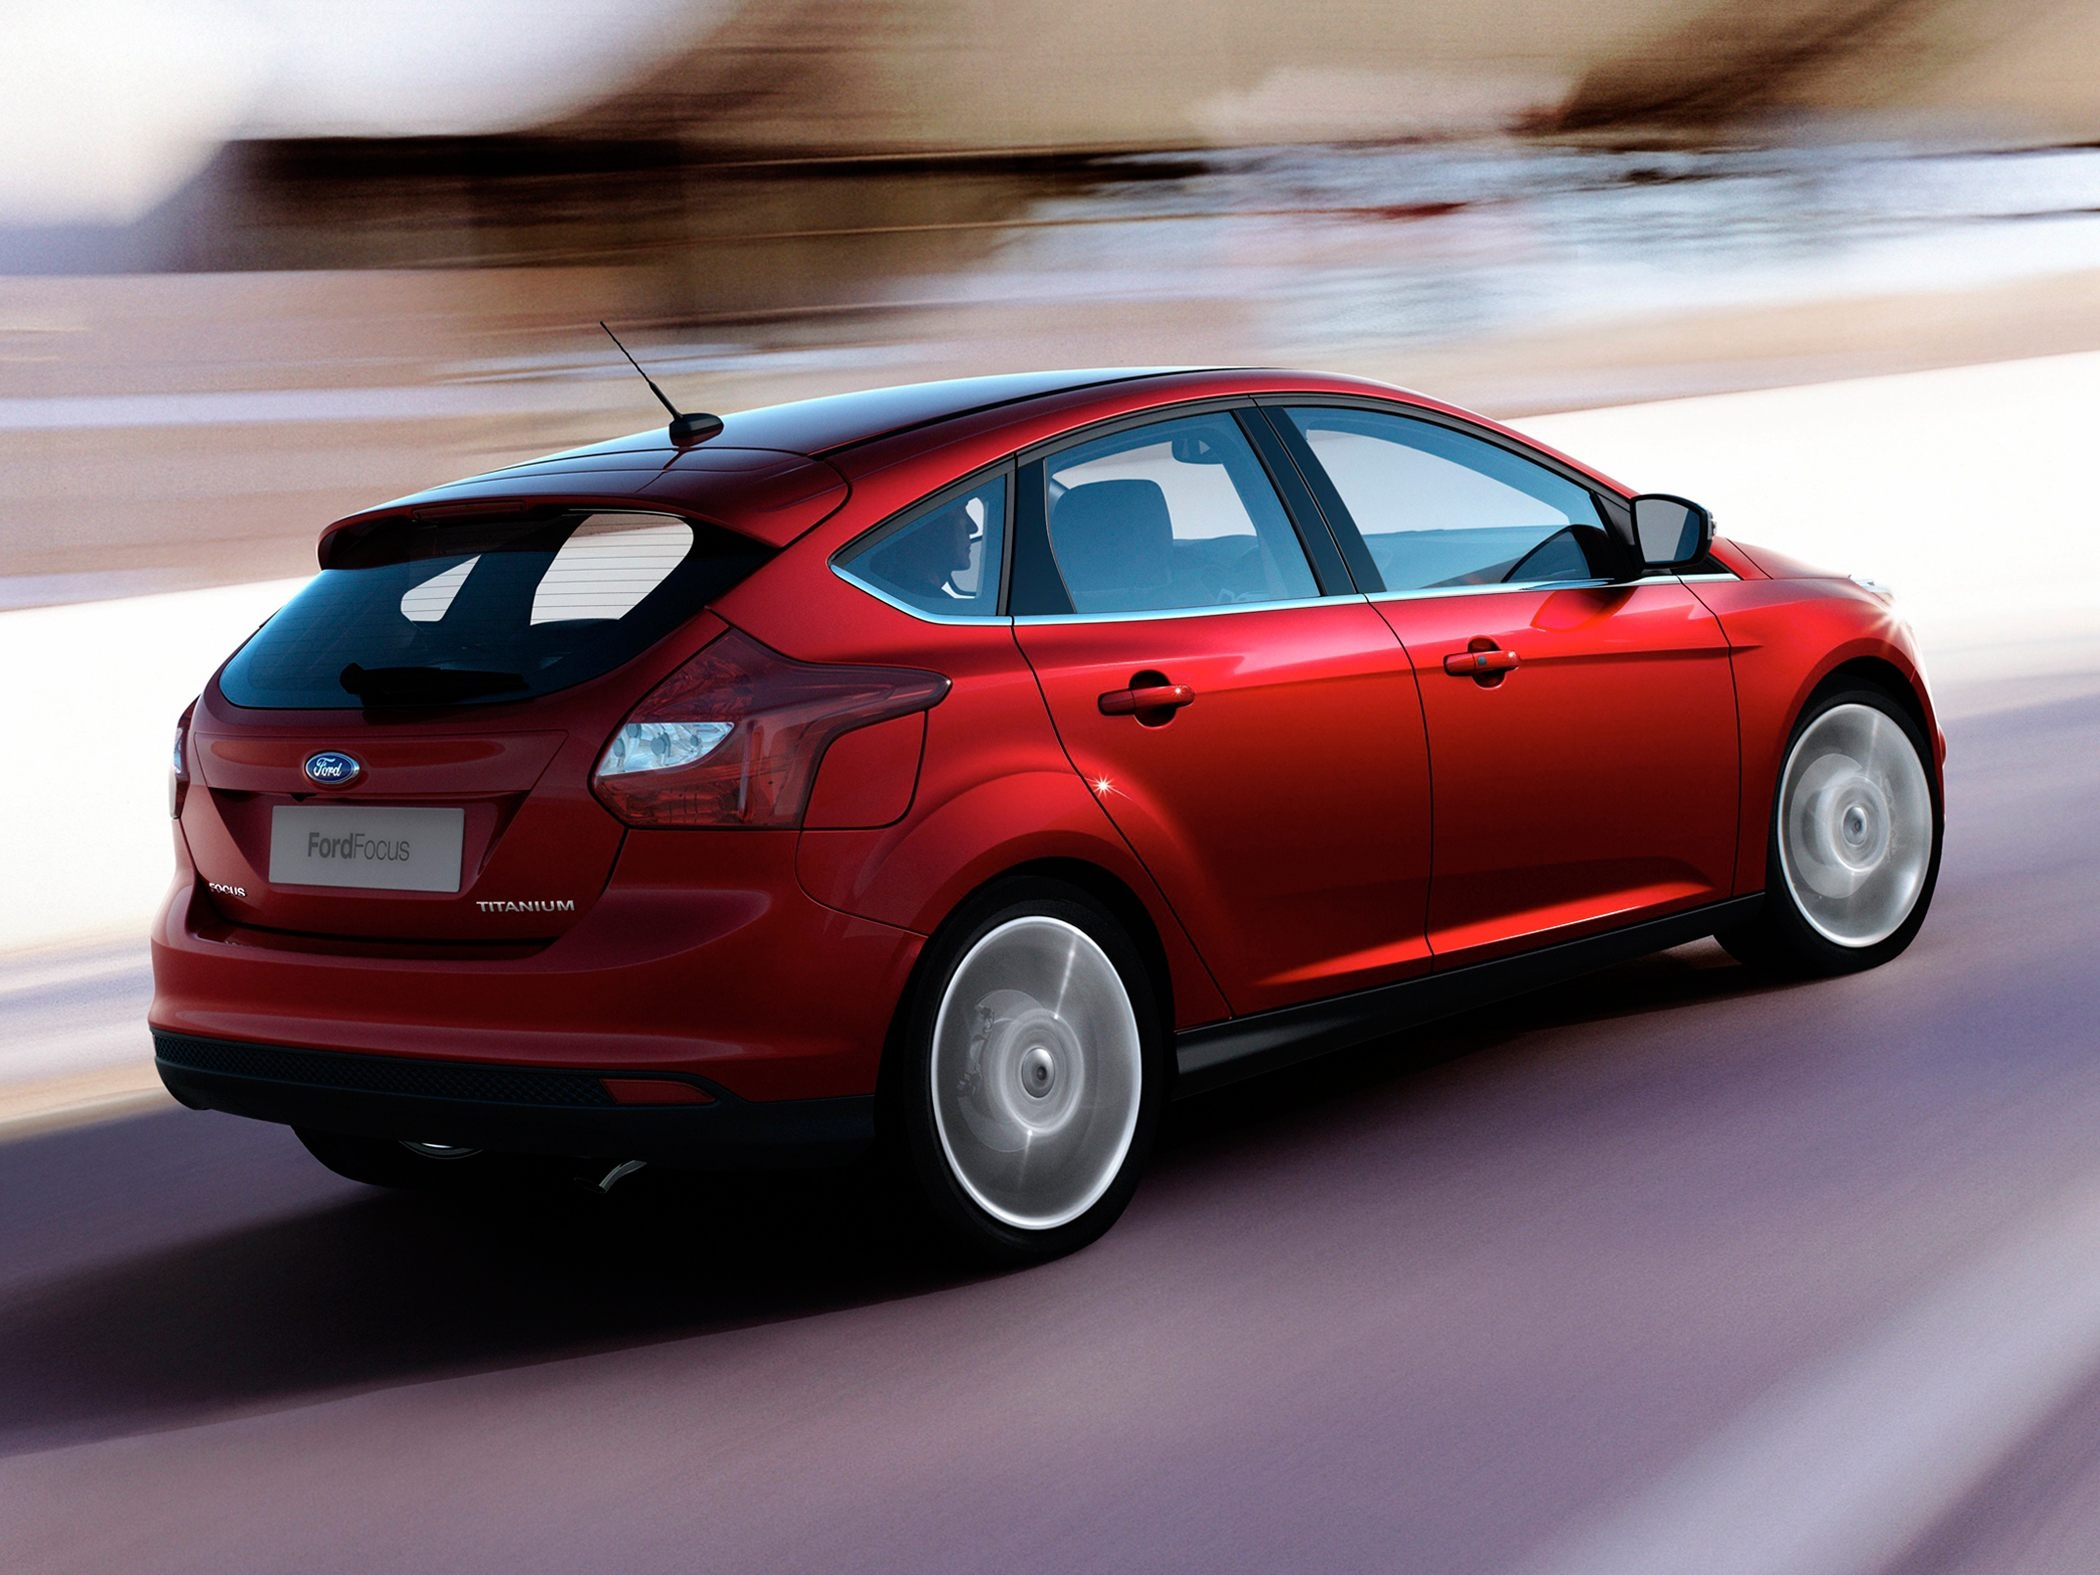 Ford Focus Invoice Price